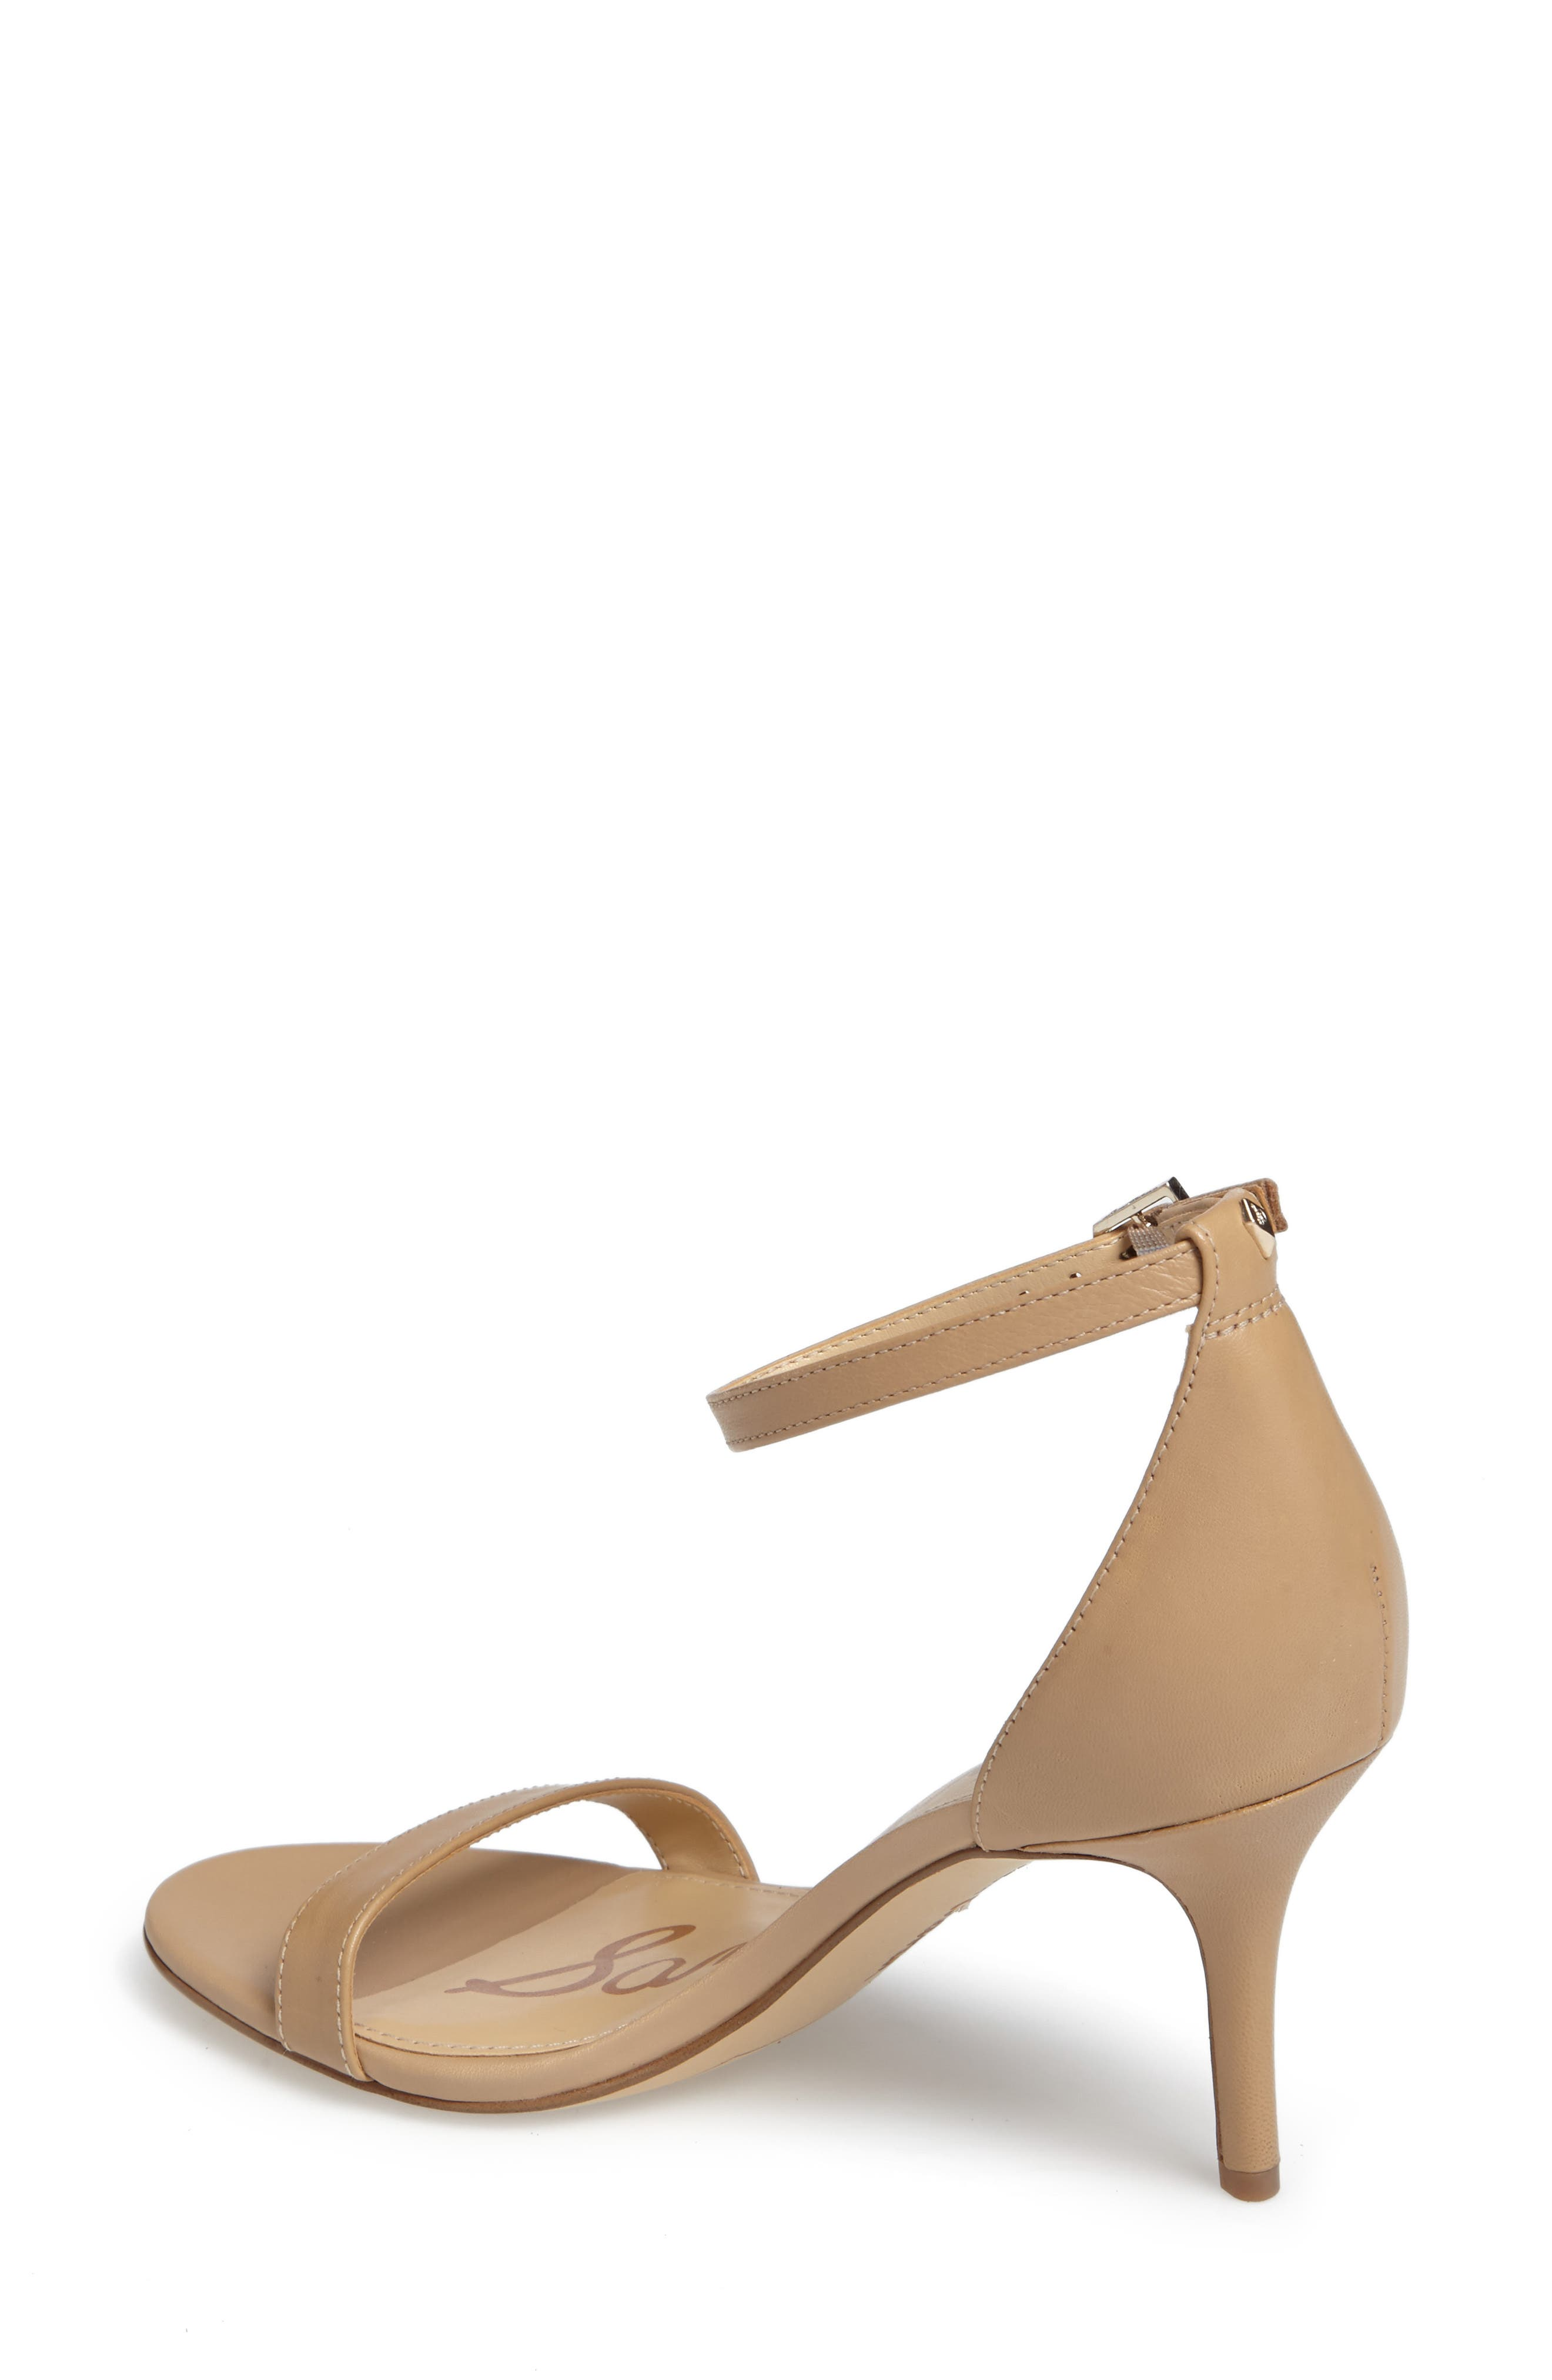 Patti Strappy Sandal,                             Alternate thumbnail 2, color,                             256